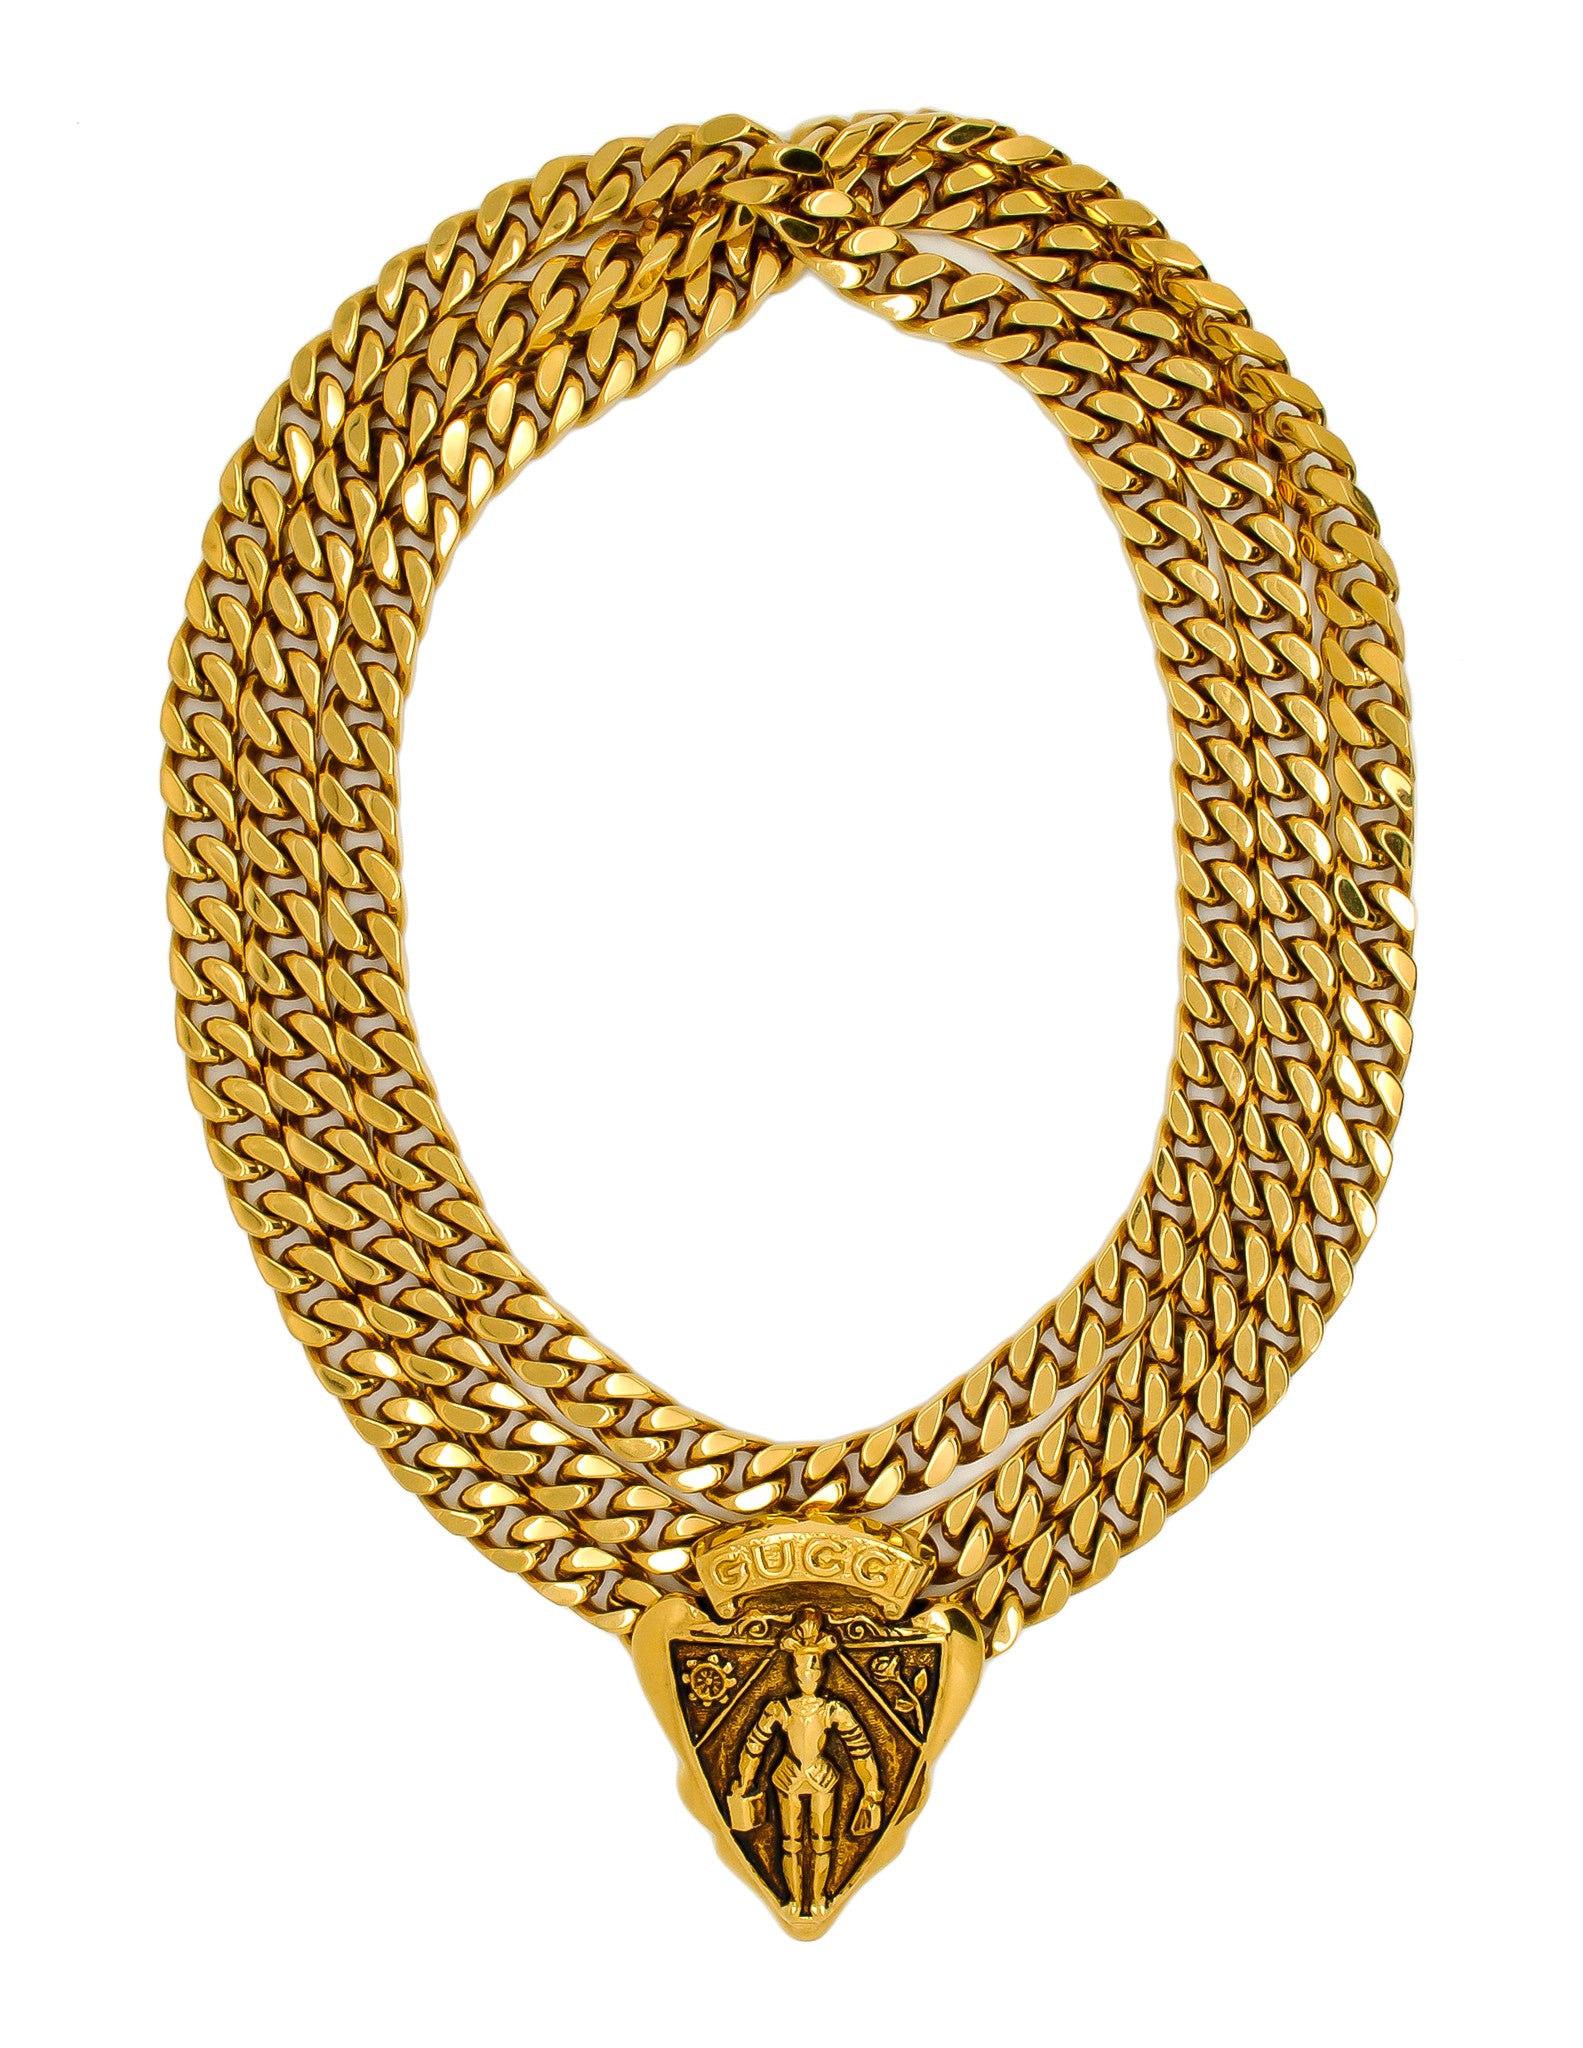 Gucci Vintage Gold Crest Chain Necklace Belt - Amarcord Vintage Fashion  - 1